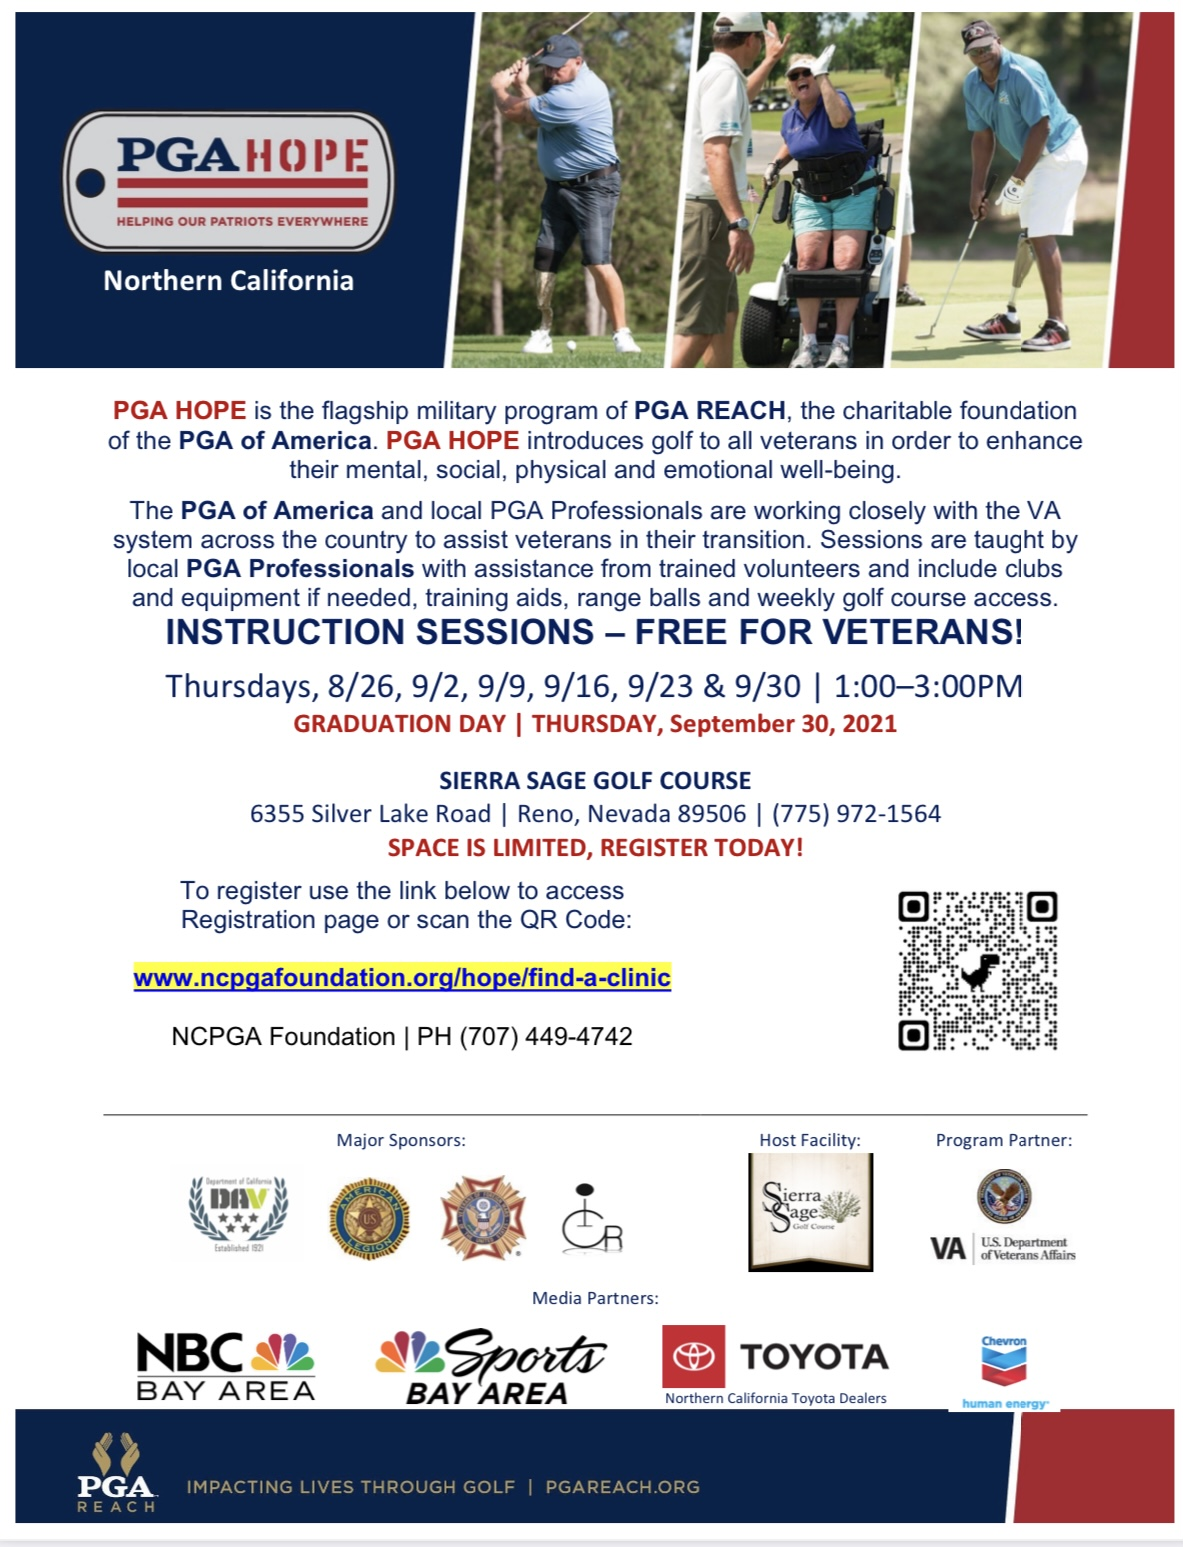 INSTRUCTION SESSIONS – FREE FOR VETERANS!